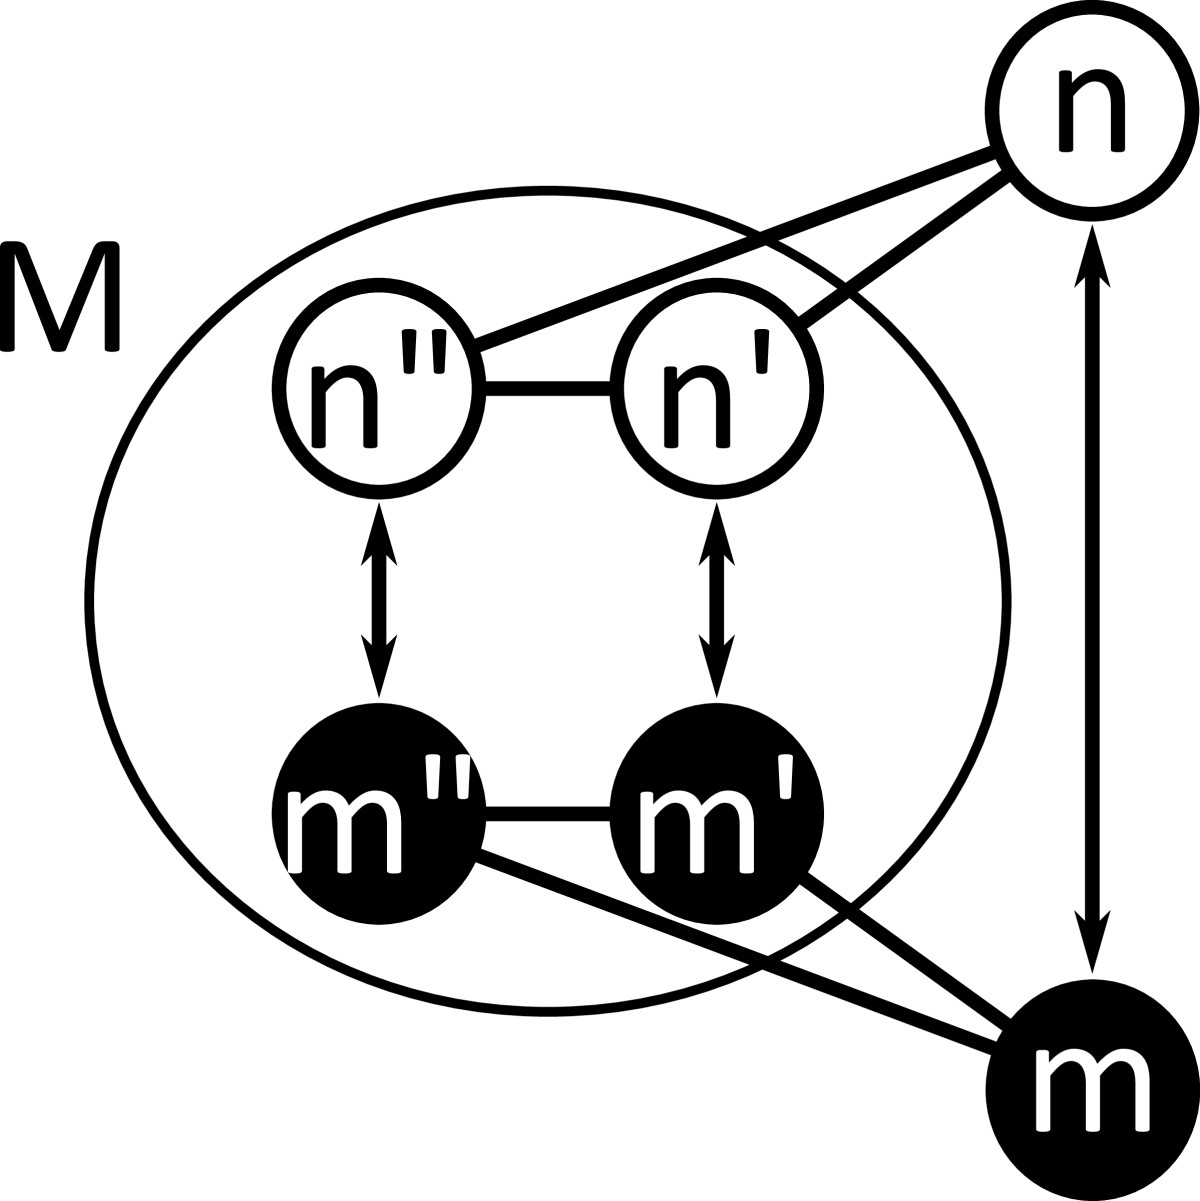 https://static-content.springer.com/image/art%3A10.1186%2F1758-2946-4-13/MediaObjects/13321_2012_Article_369_Fig5_HTML.jpg